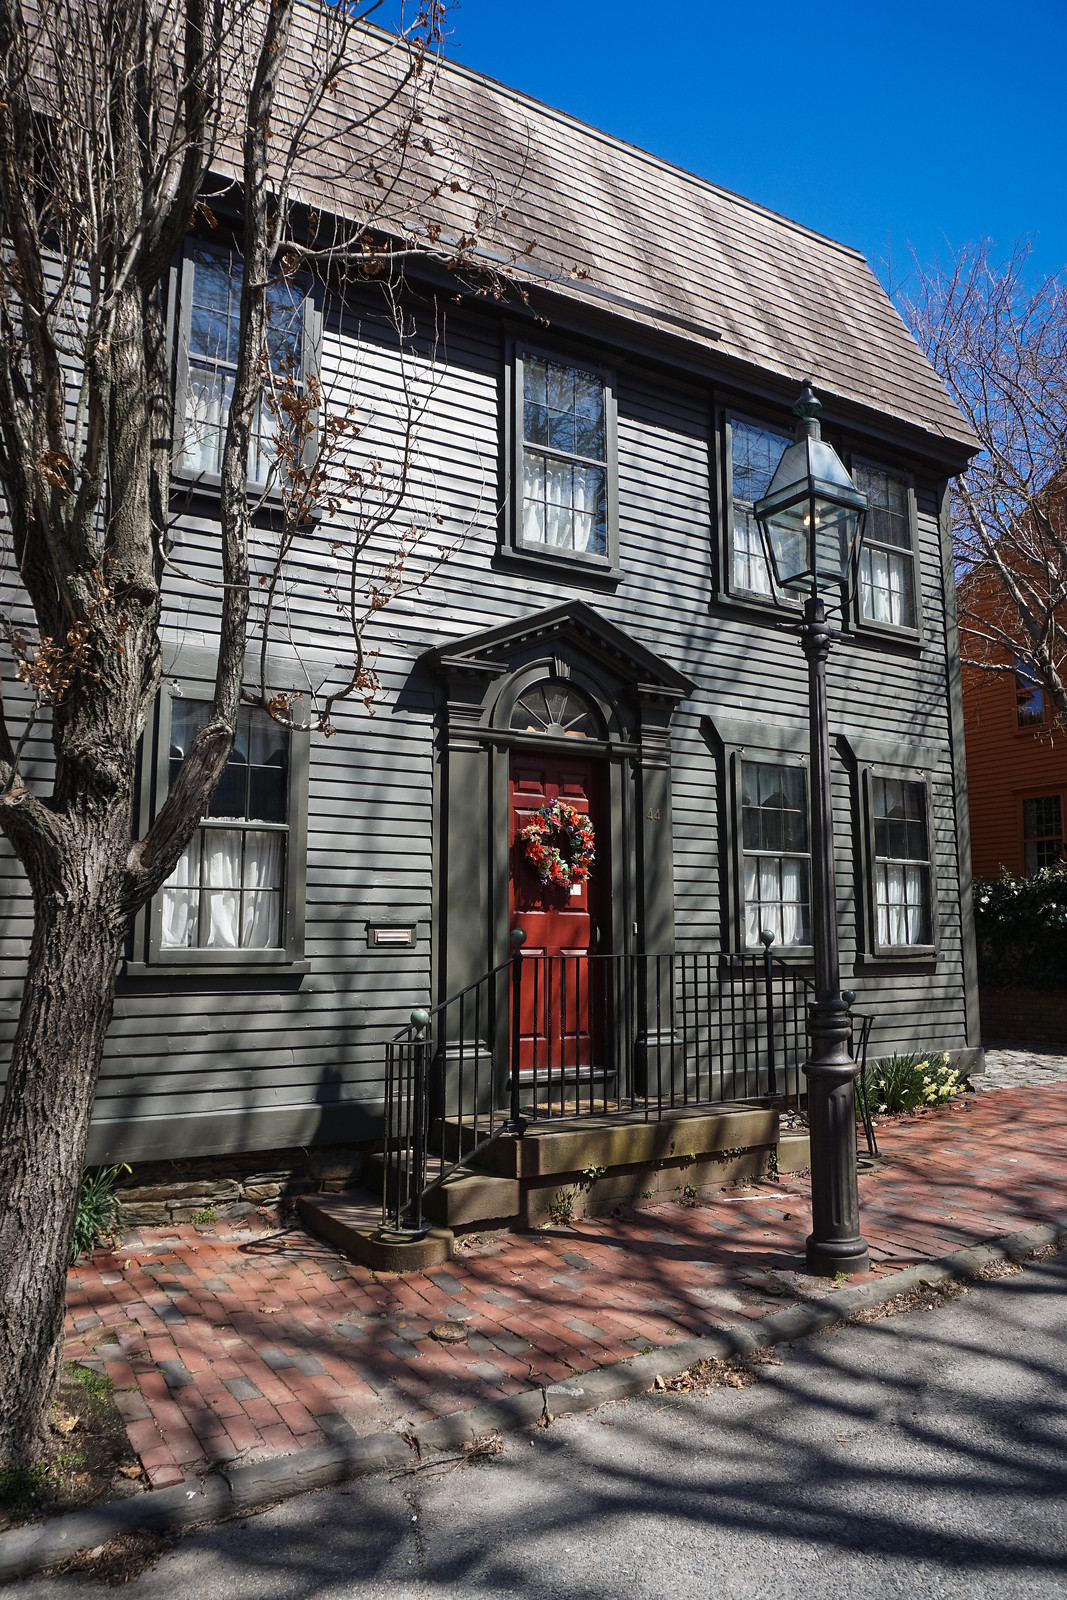 Historical Home |  48 Hours in Newport Itinerary | A First Timer's Guide to 2 Days in Newport Rhode Island | What to do in Newport | Newport Travel Guide | Best Things to do in Newport | Best Places to Visit in Newport